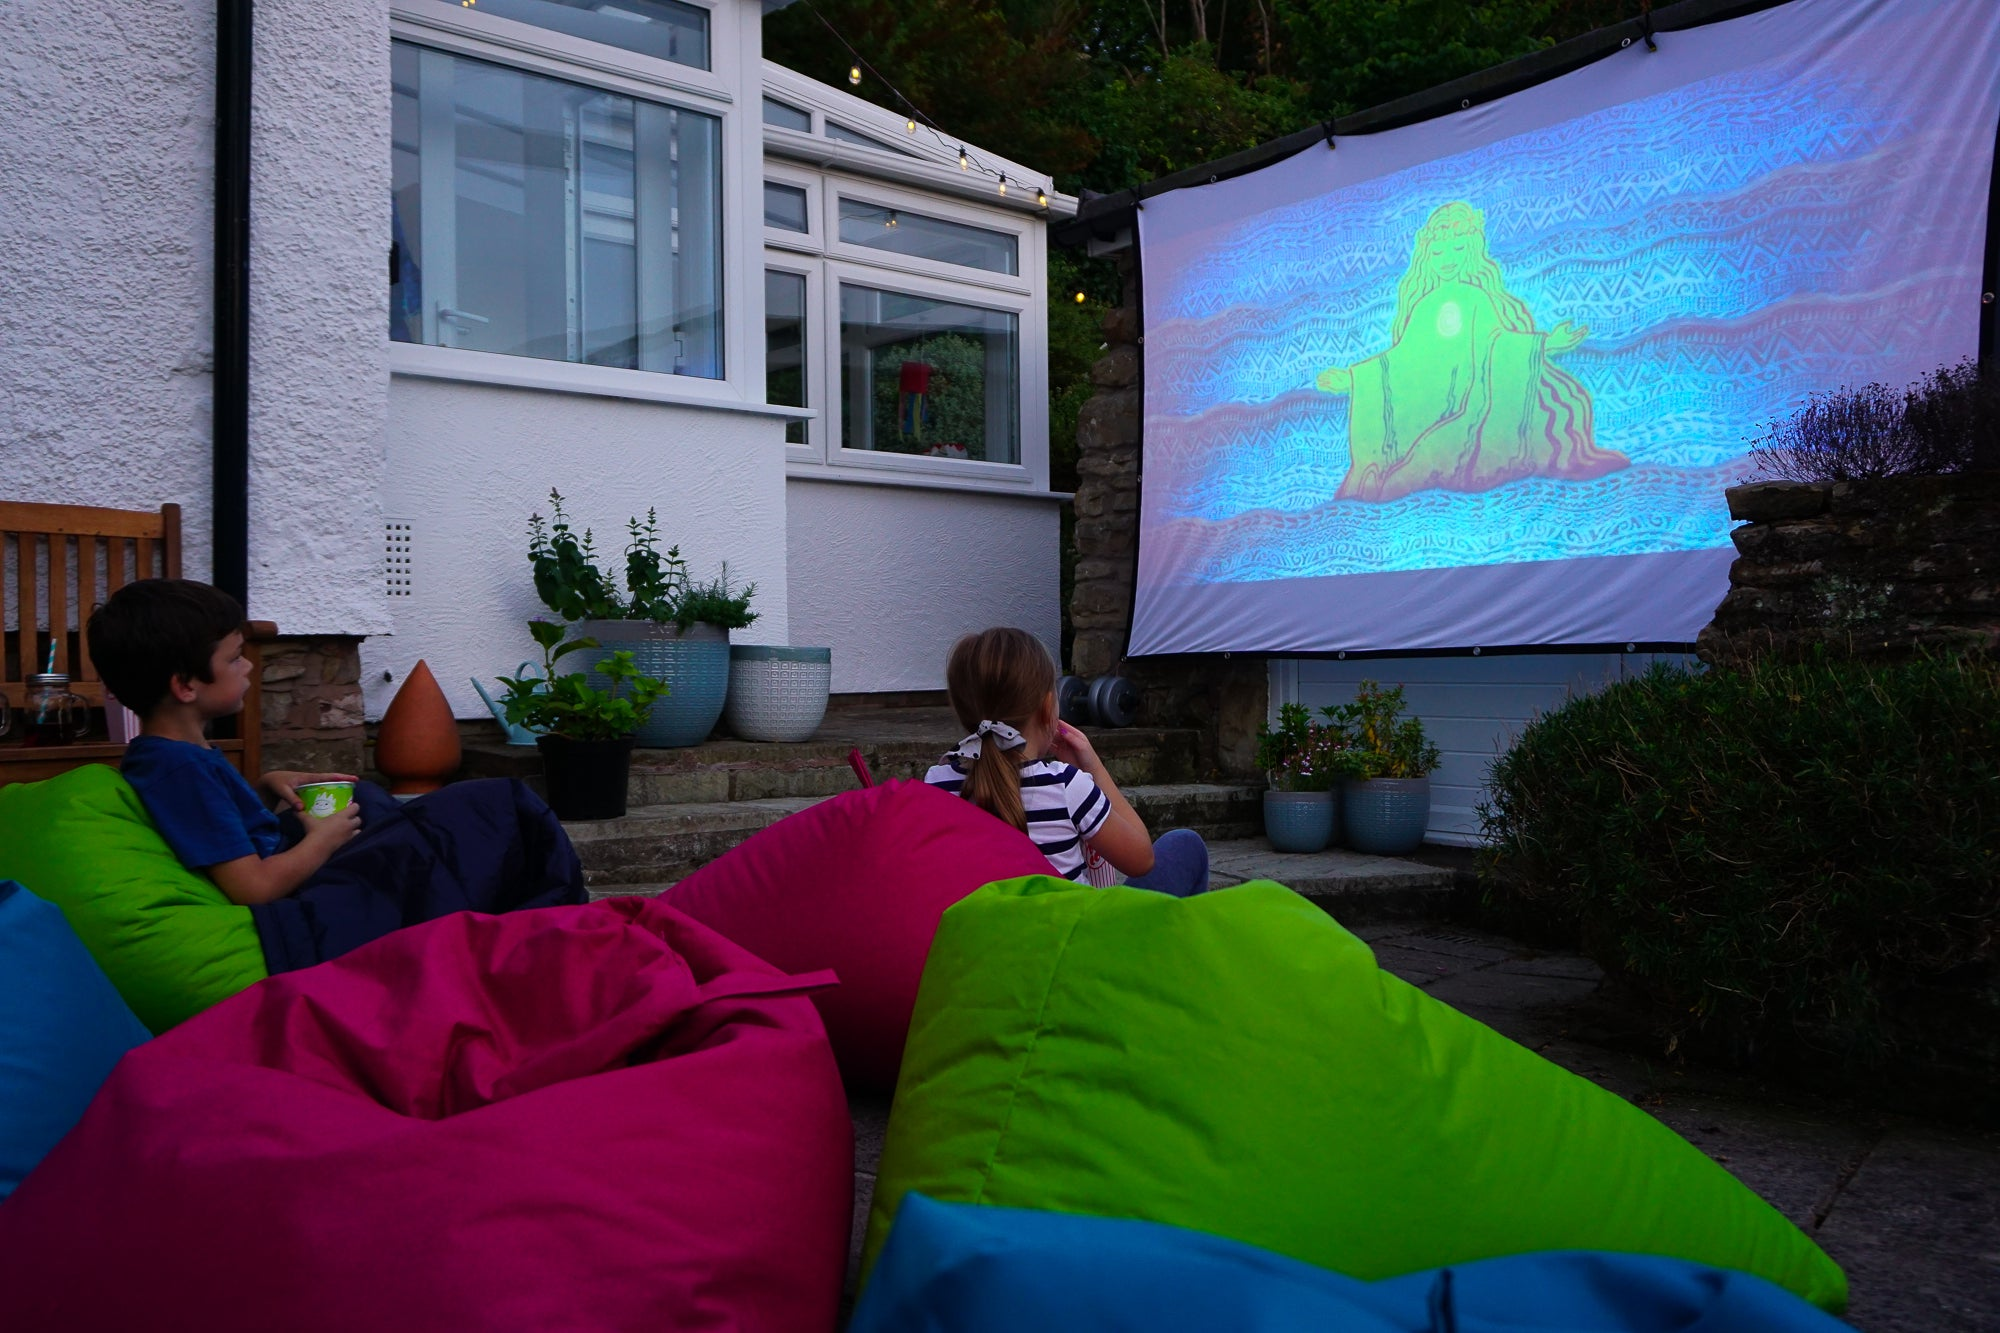 Turn your garden in to an outdoor cinema